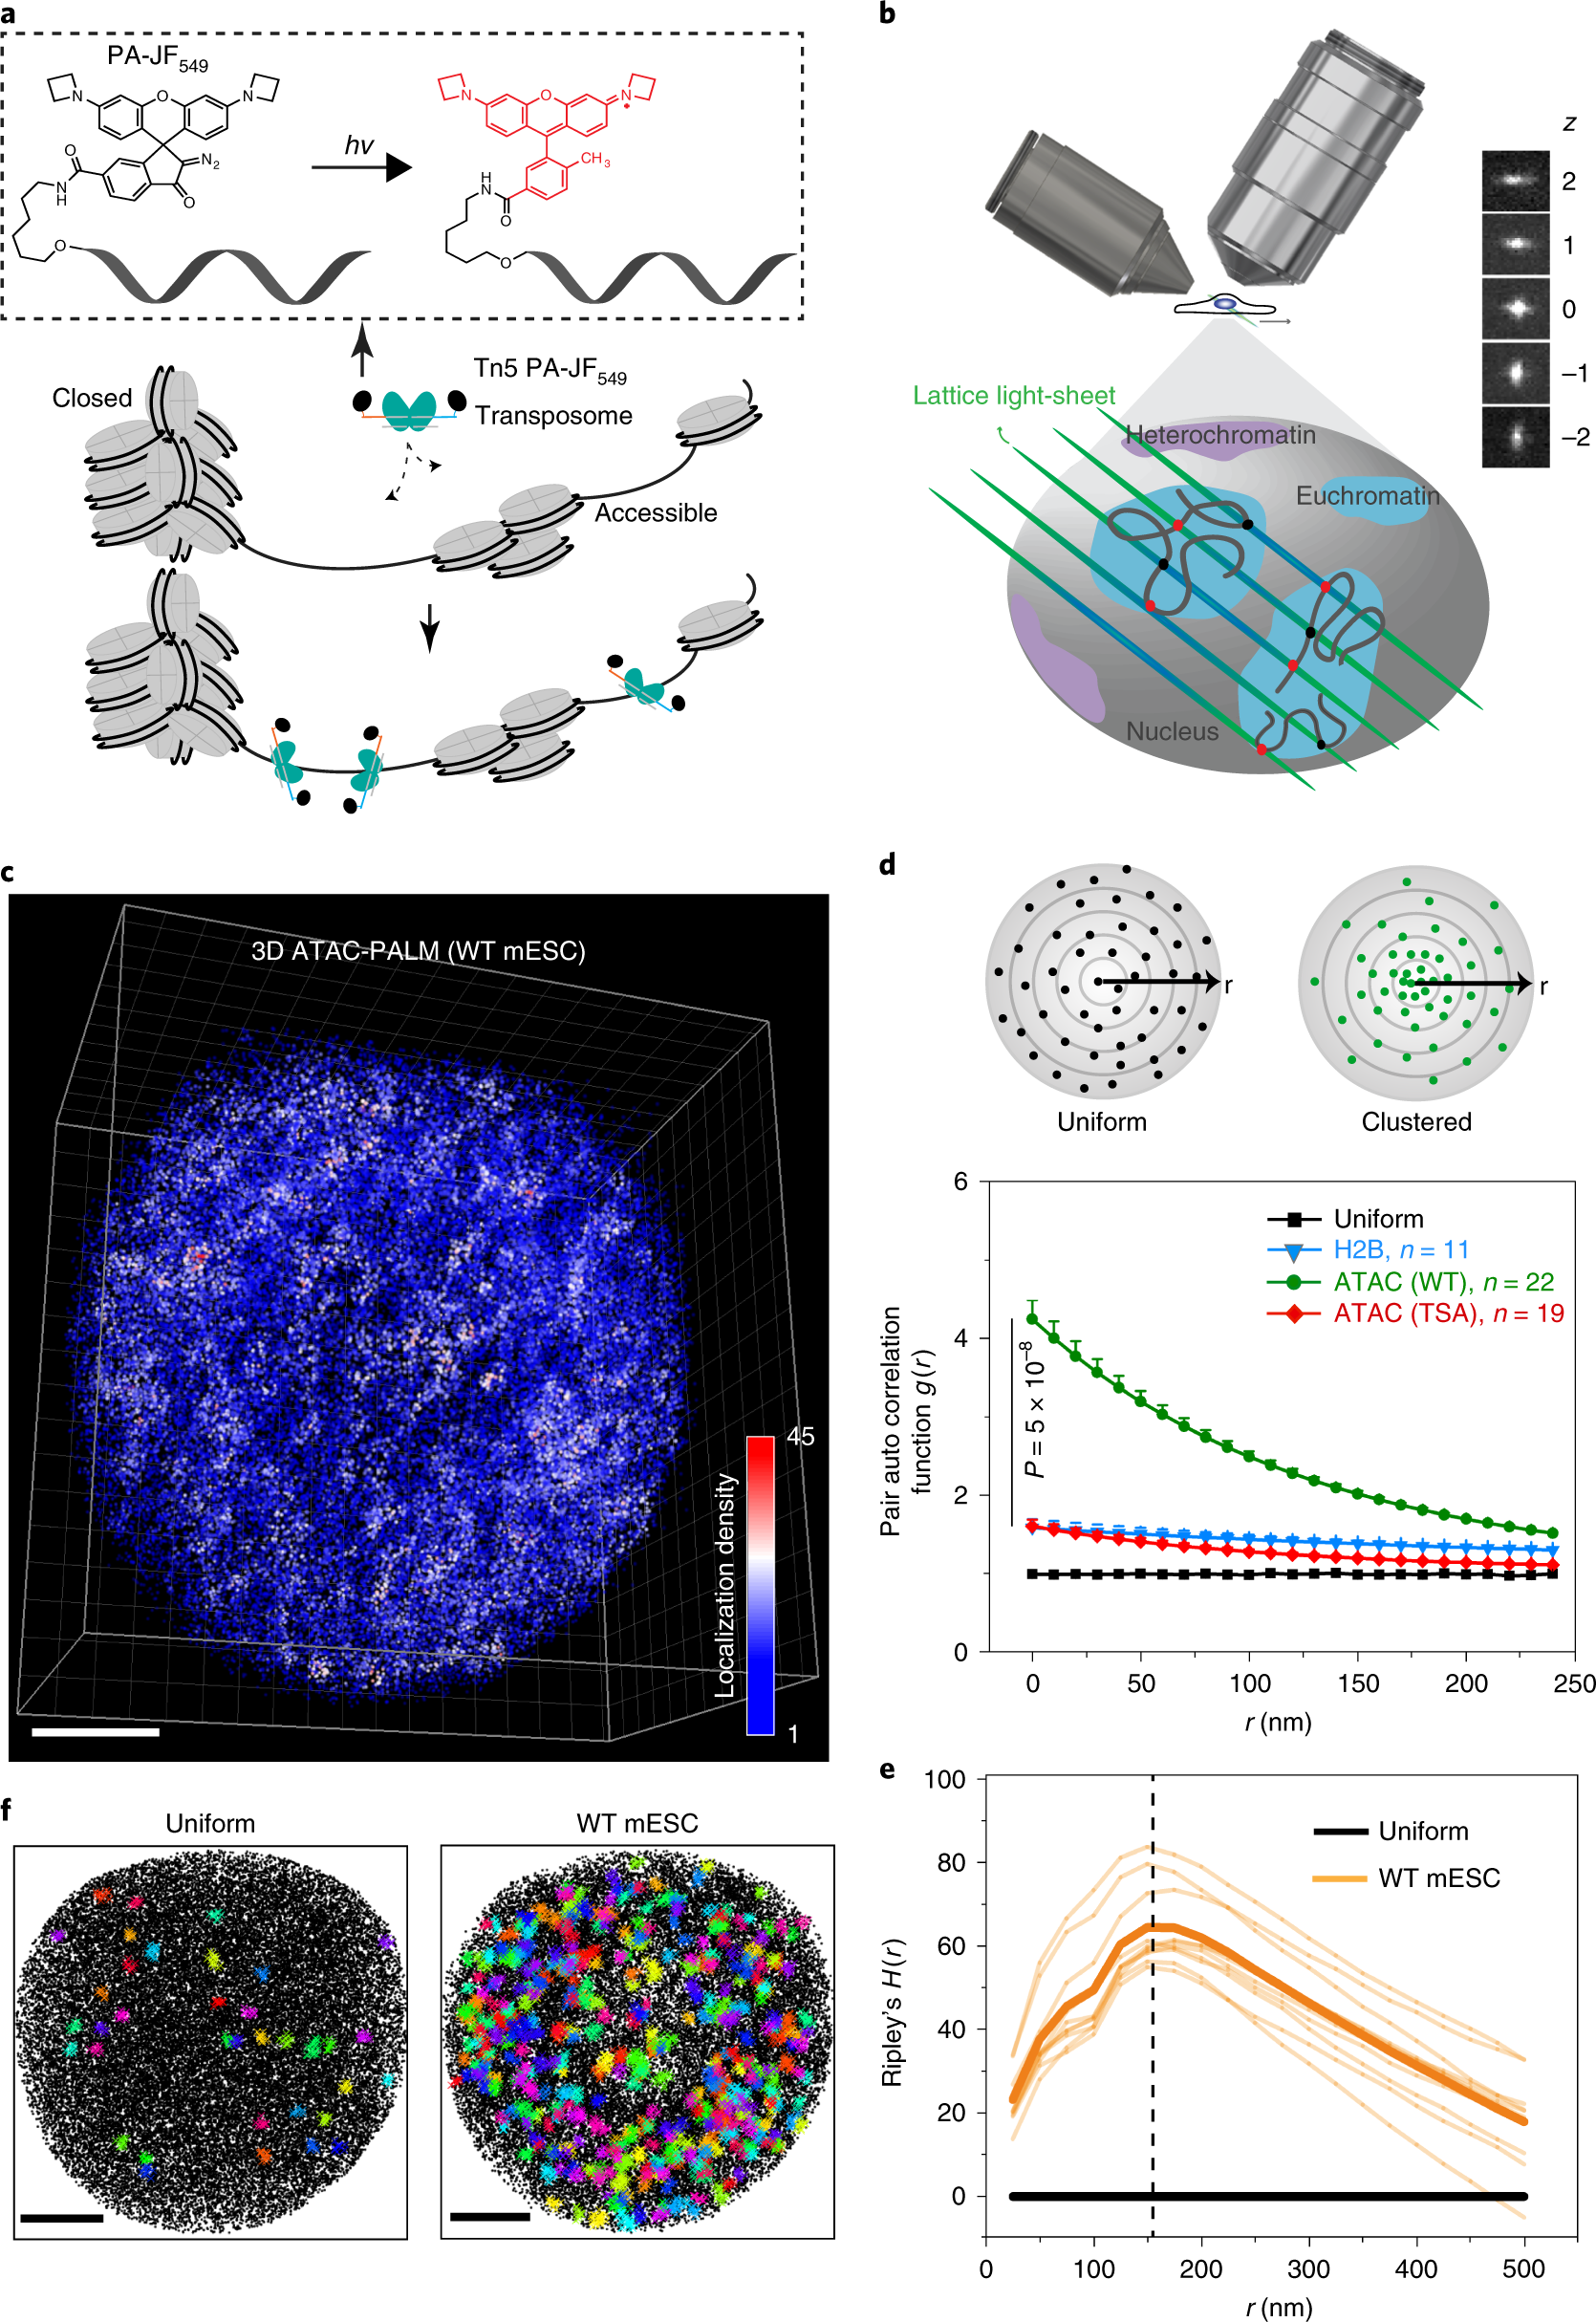 Visualizing the accessible genome topology by 3D ATAC-PALM.